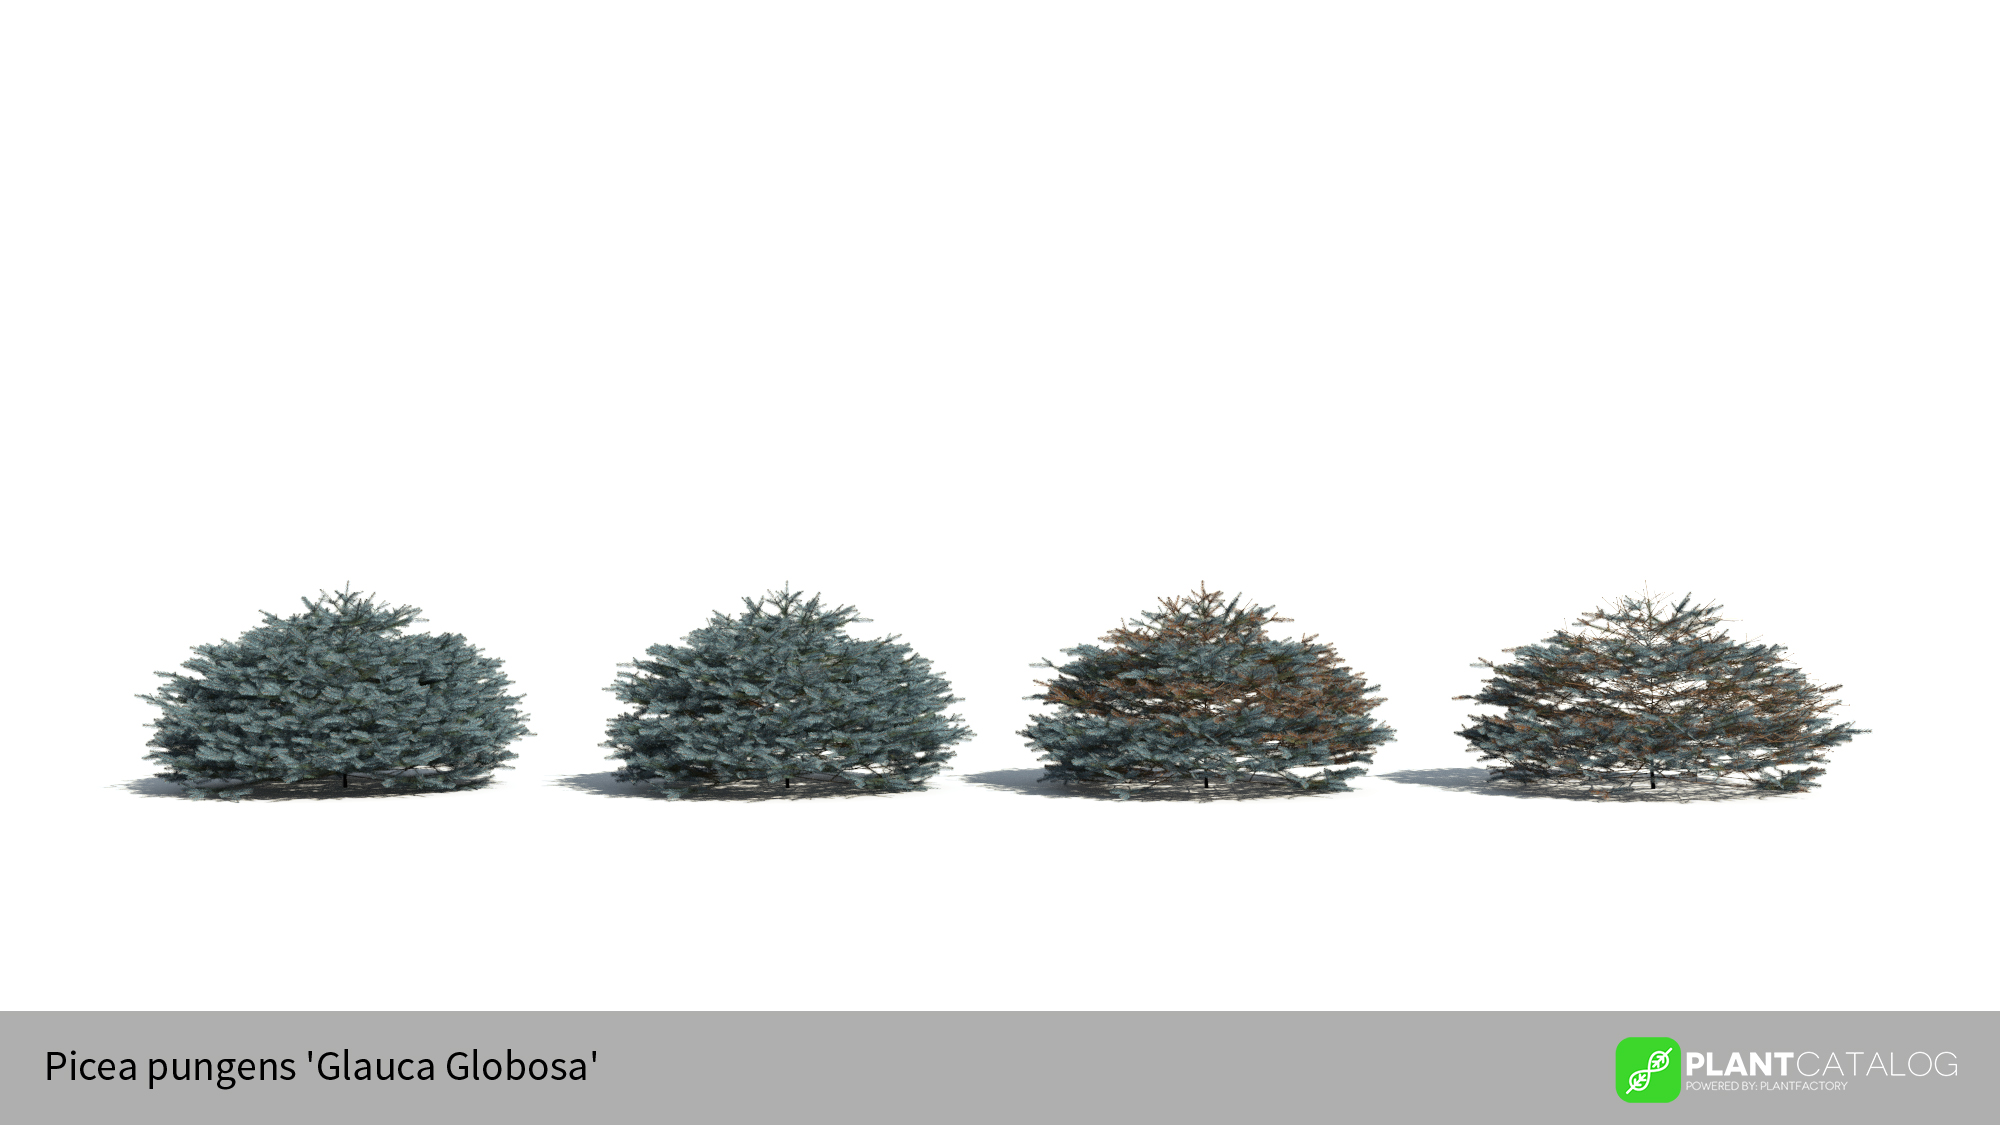 3D model of the Colorado Blue spruce 'Glauca Globosa' - Picea pungens 'Glauca Globosa' - from the PlantCatalog, rendered in VUE